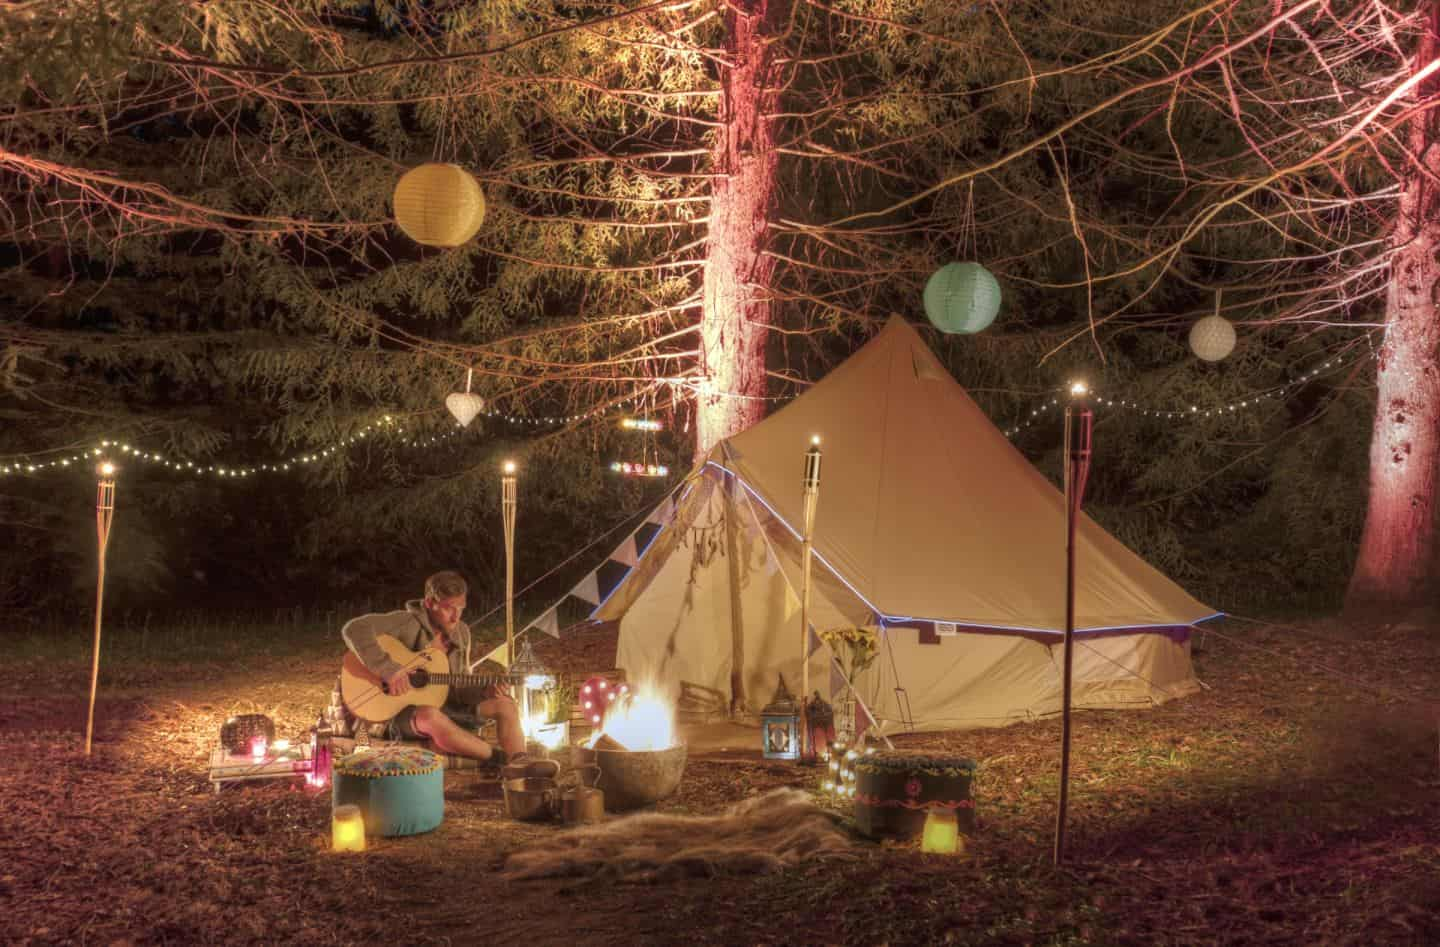 A man sat outside a tent in a woodland clearing playing guitar surrounded by tiki torches and paper lanterns hanging from trees.